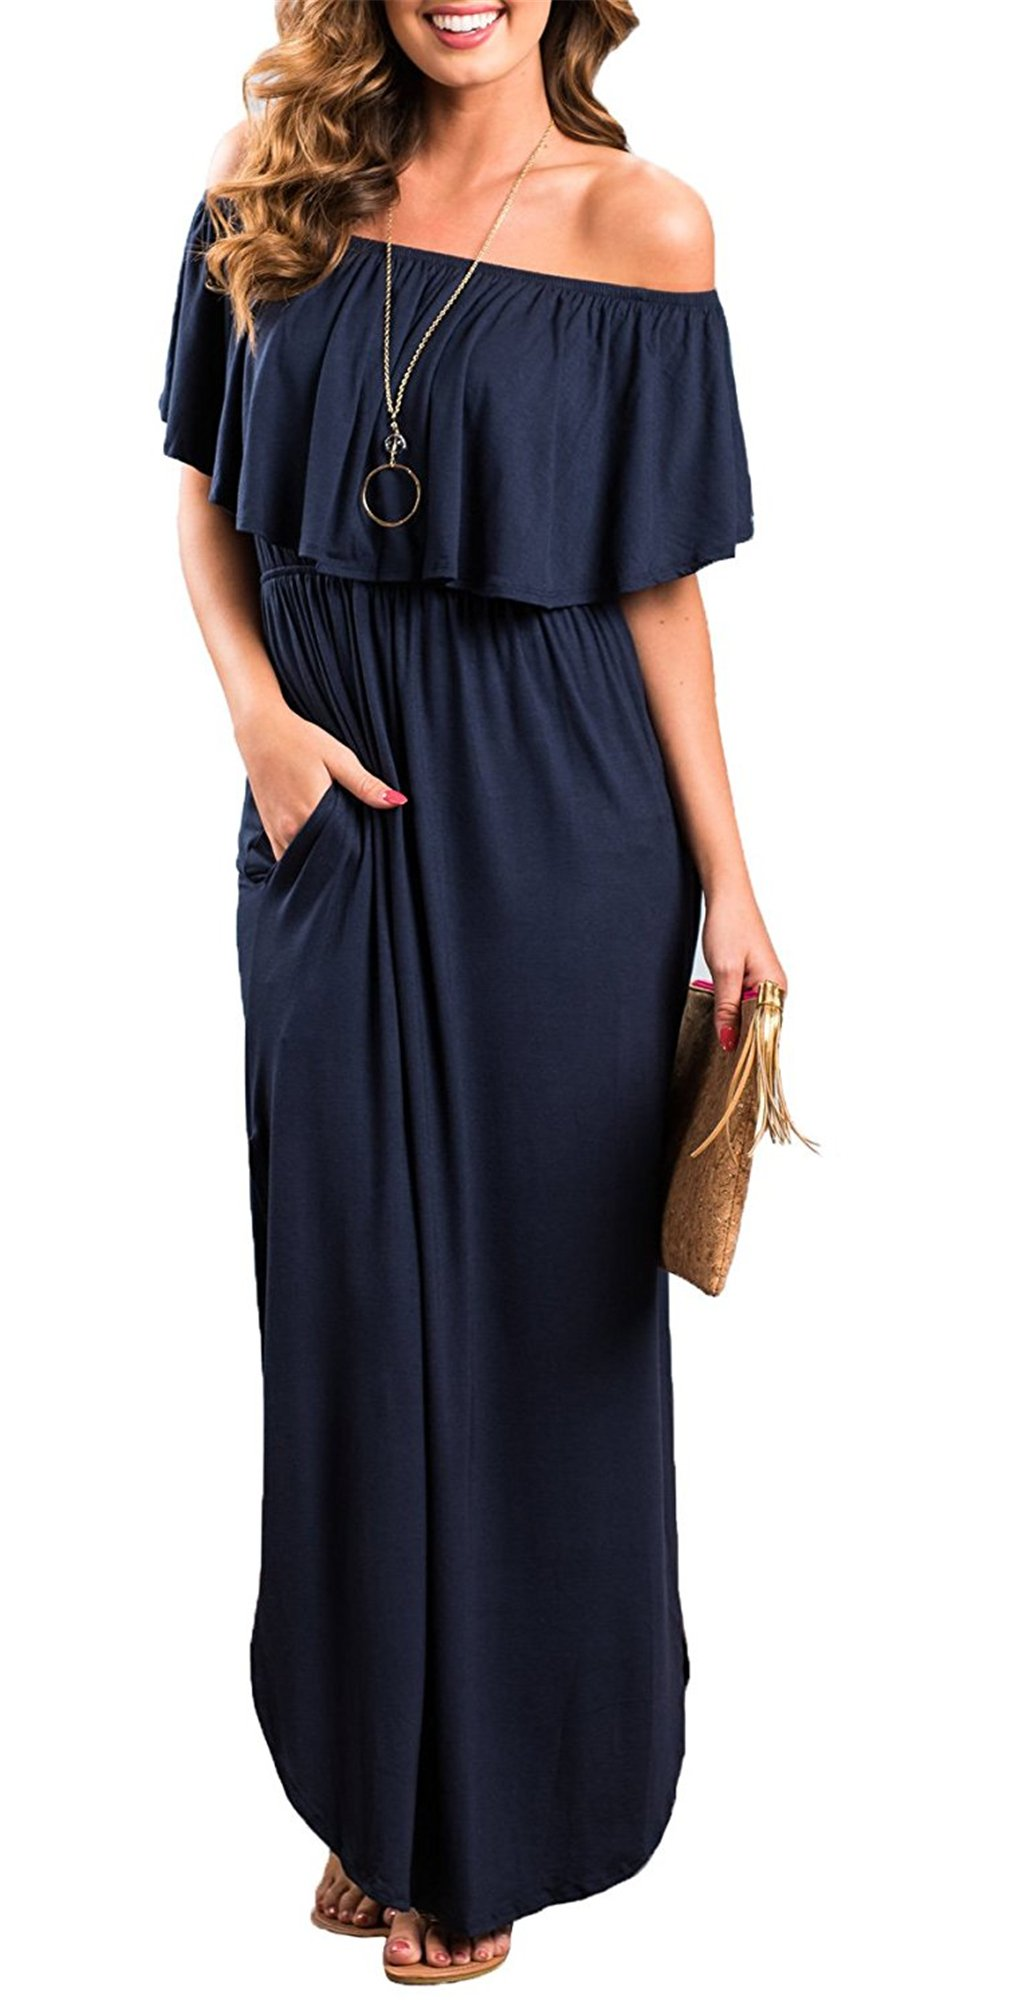 Happy Sailed Women Off The Shoulder Ruffle Pockets Casual Dress Side Split Beach Maxi Dresses X-Large Navy